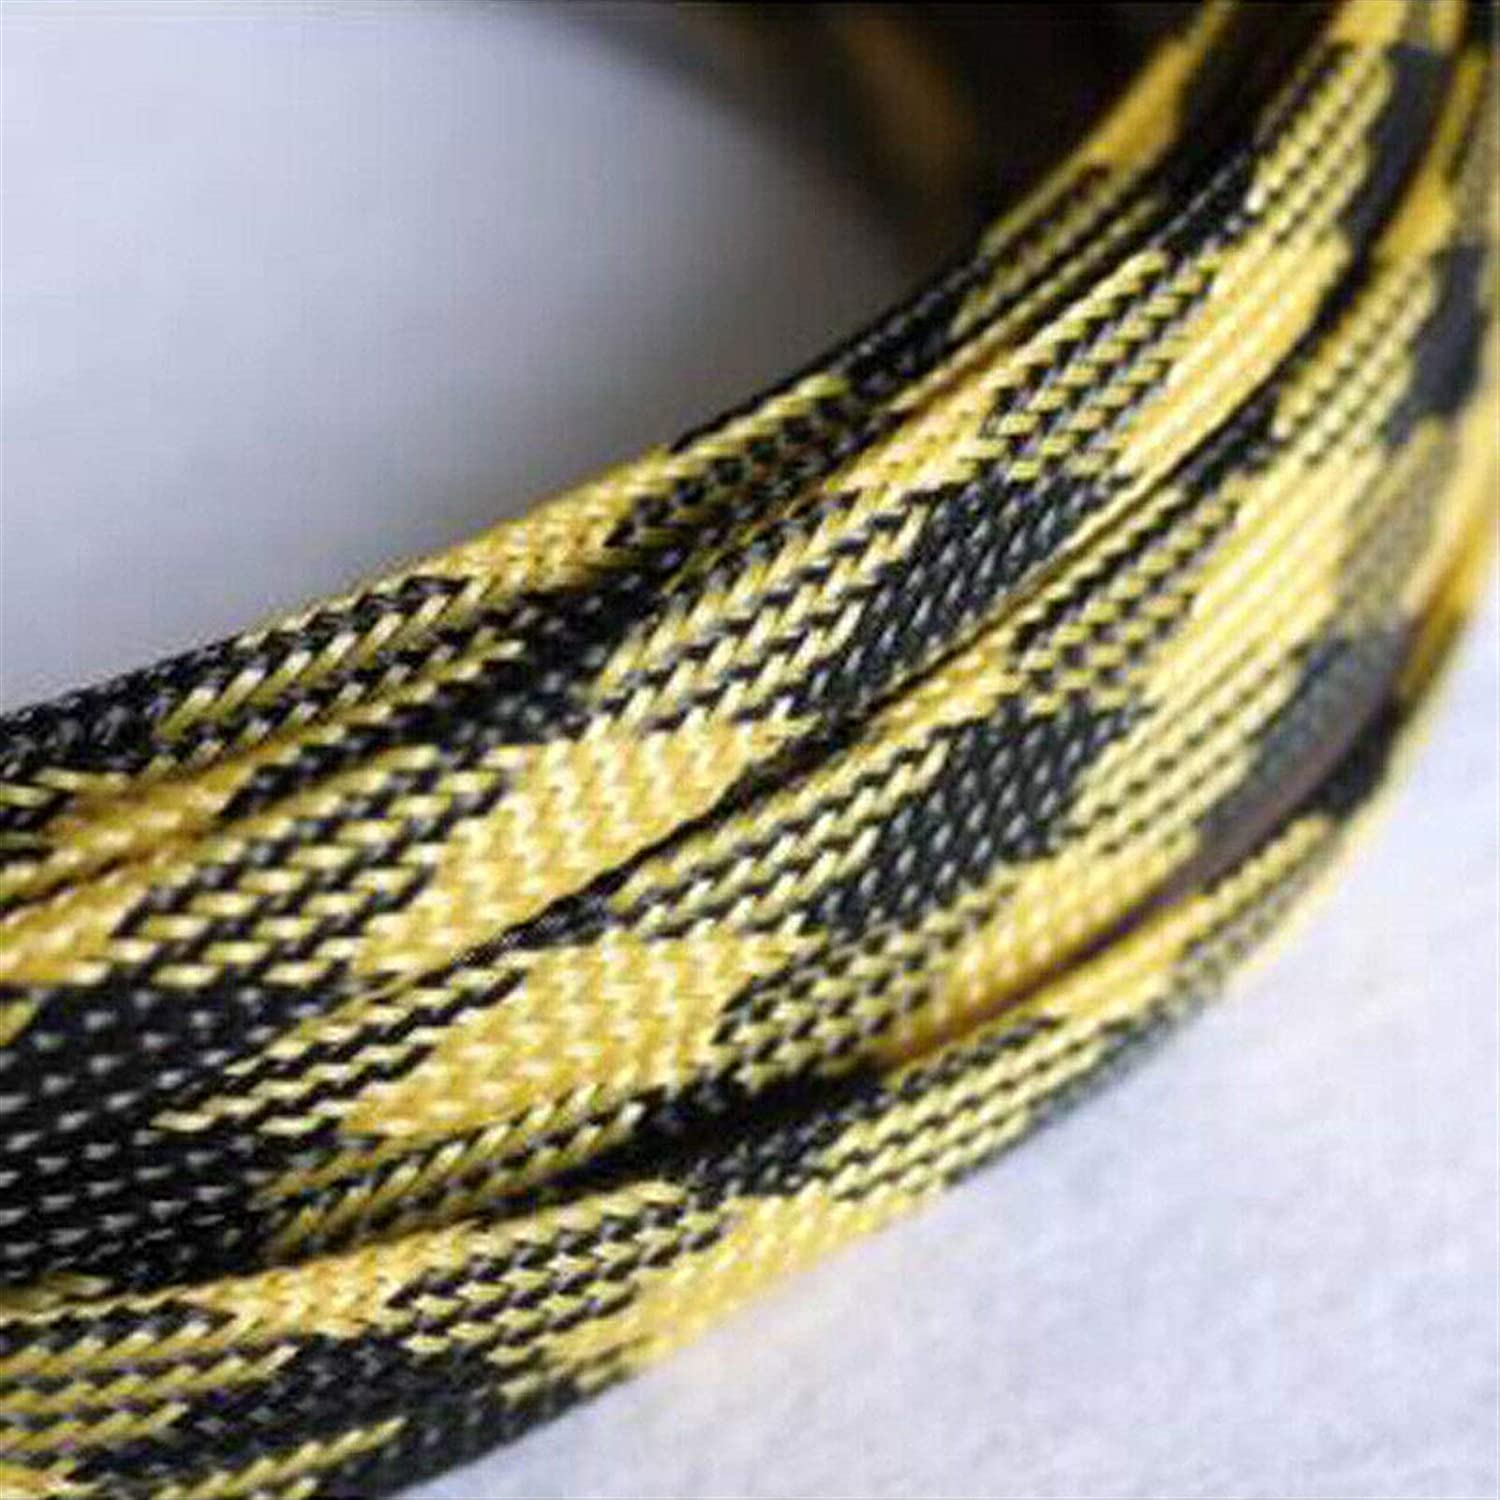 Our Max 46% OFF shop OFFers the best service Cable Tidy Sleeves Length 1-50Meters Black 3-16mm Yellow Snakes